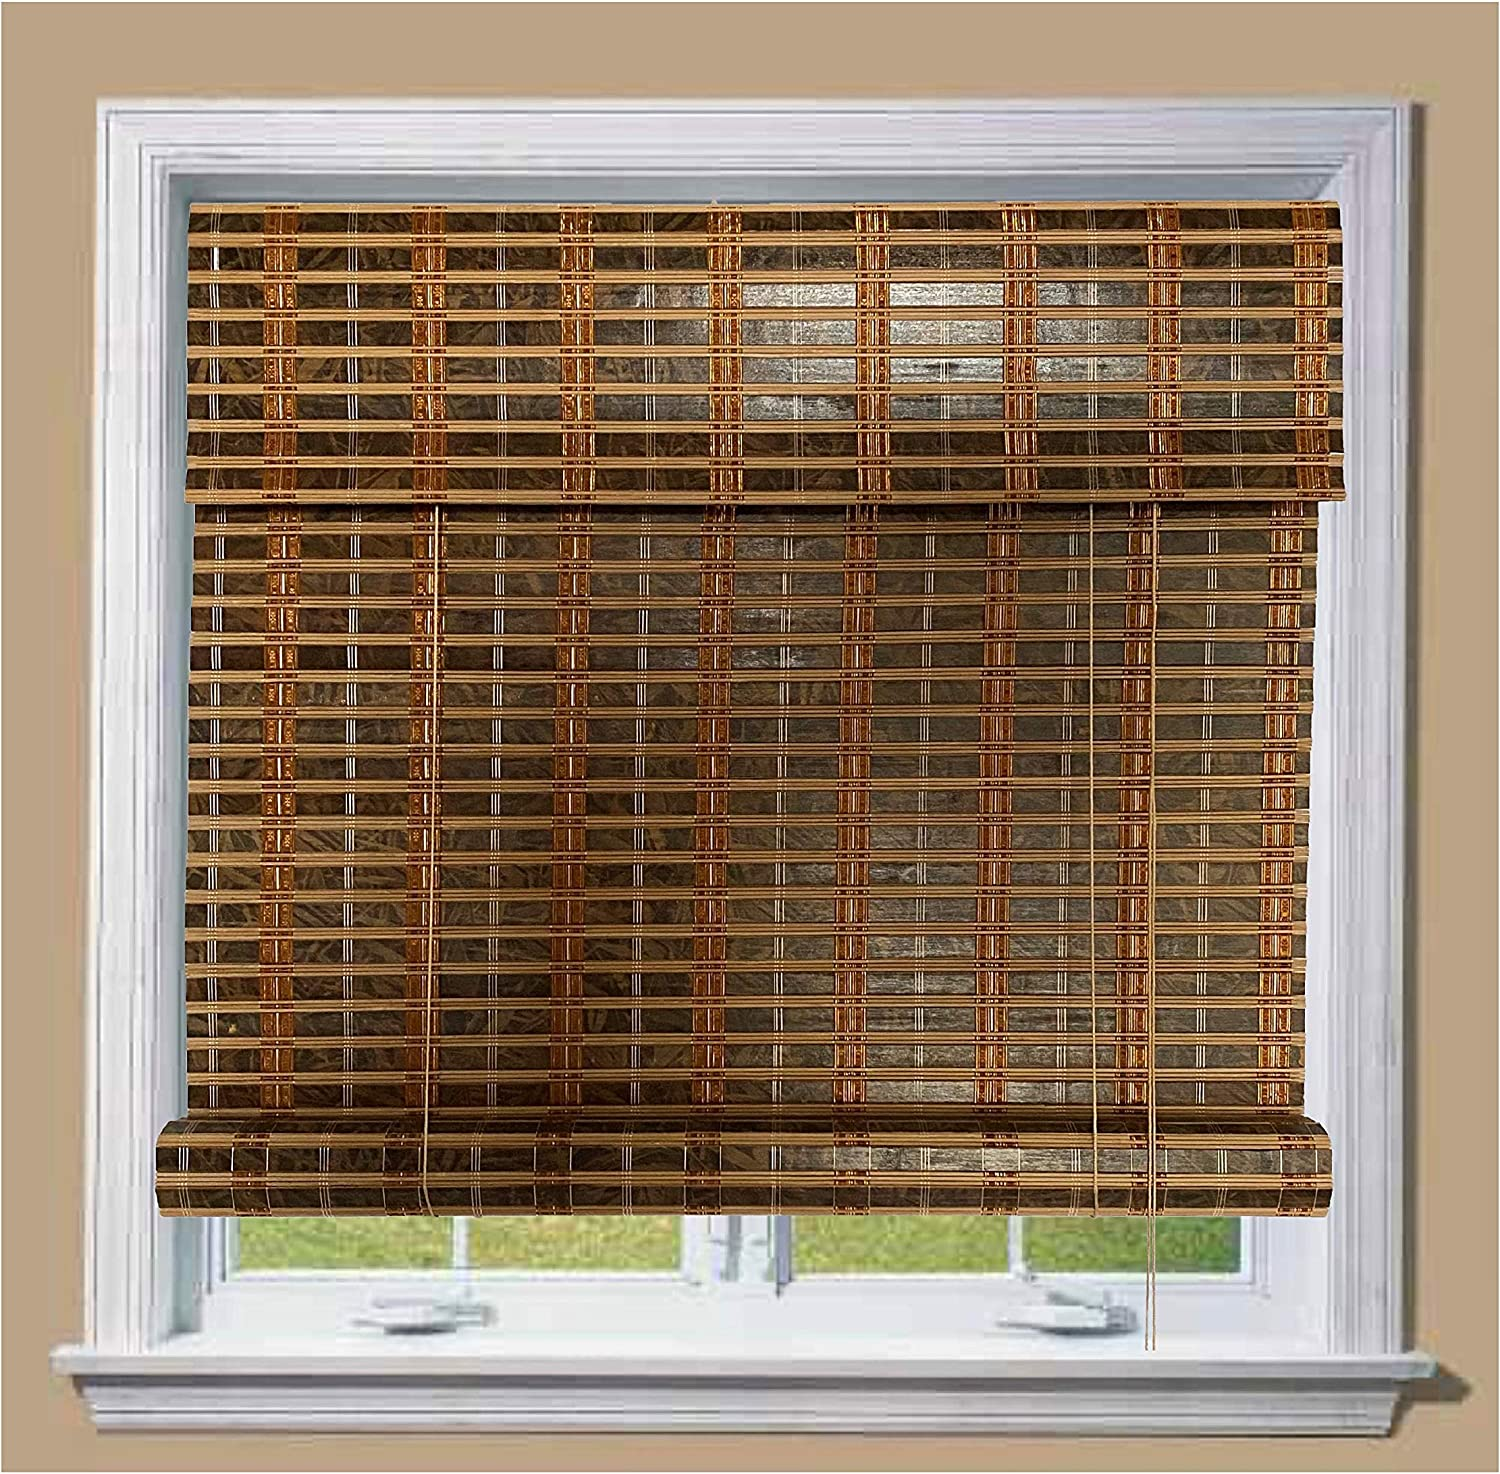 THY COLLECTIBLE Bamboo Max 64% OFF Roll Up Window Sun Max 89% OFF Blind Light Shade Fil